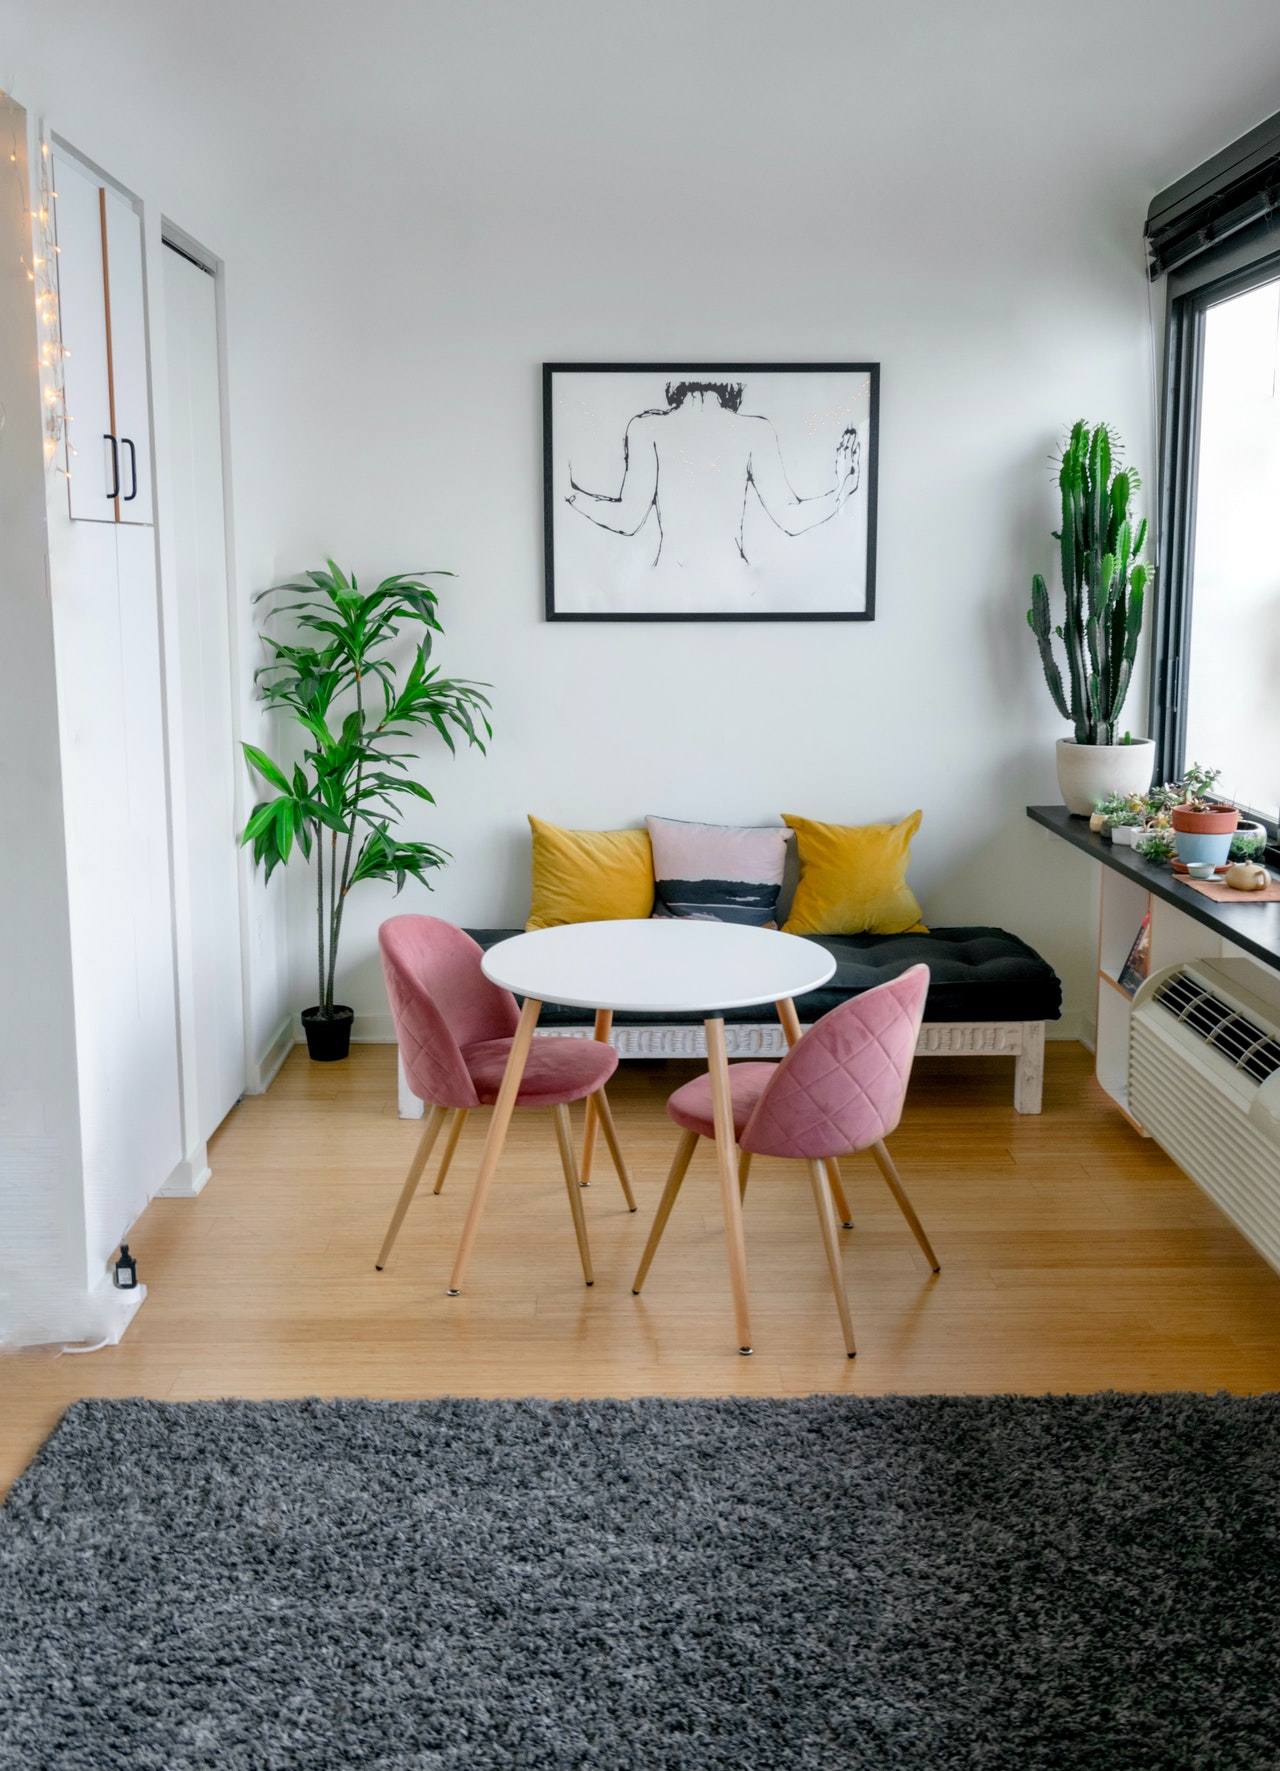 using color in home decor